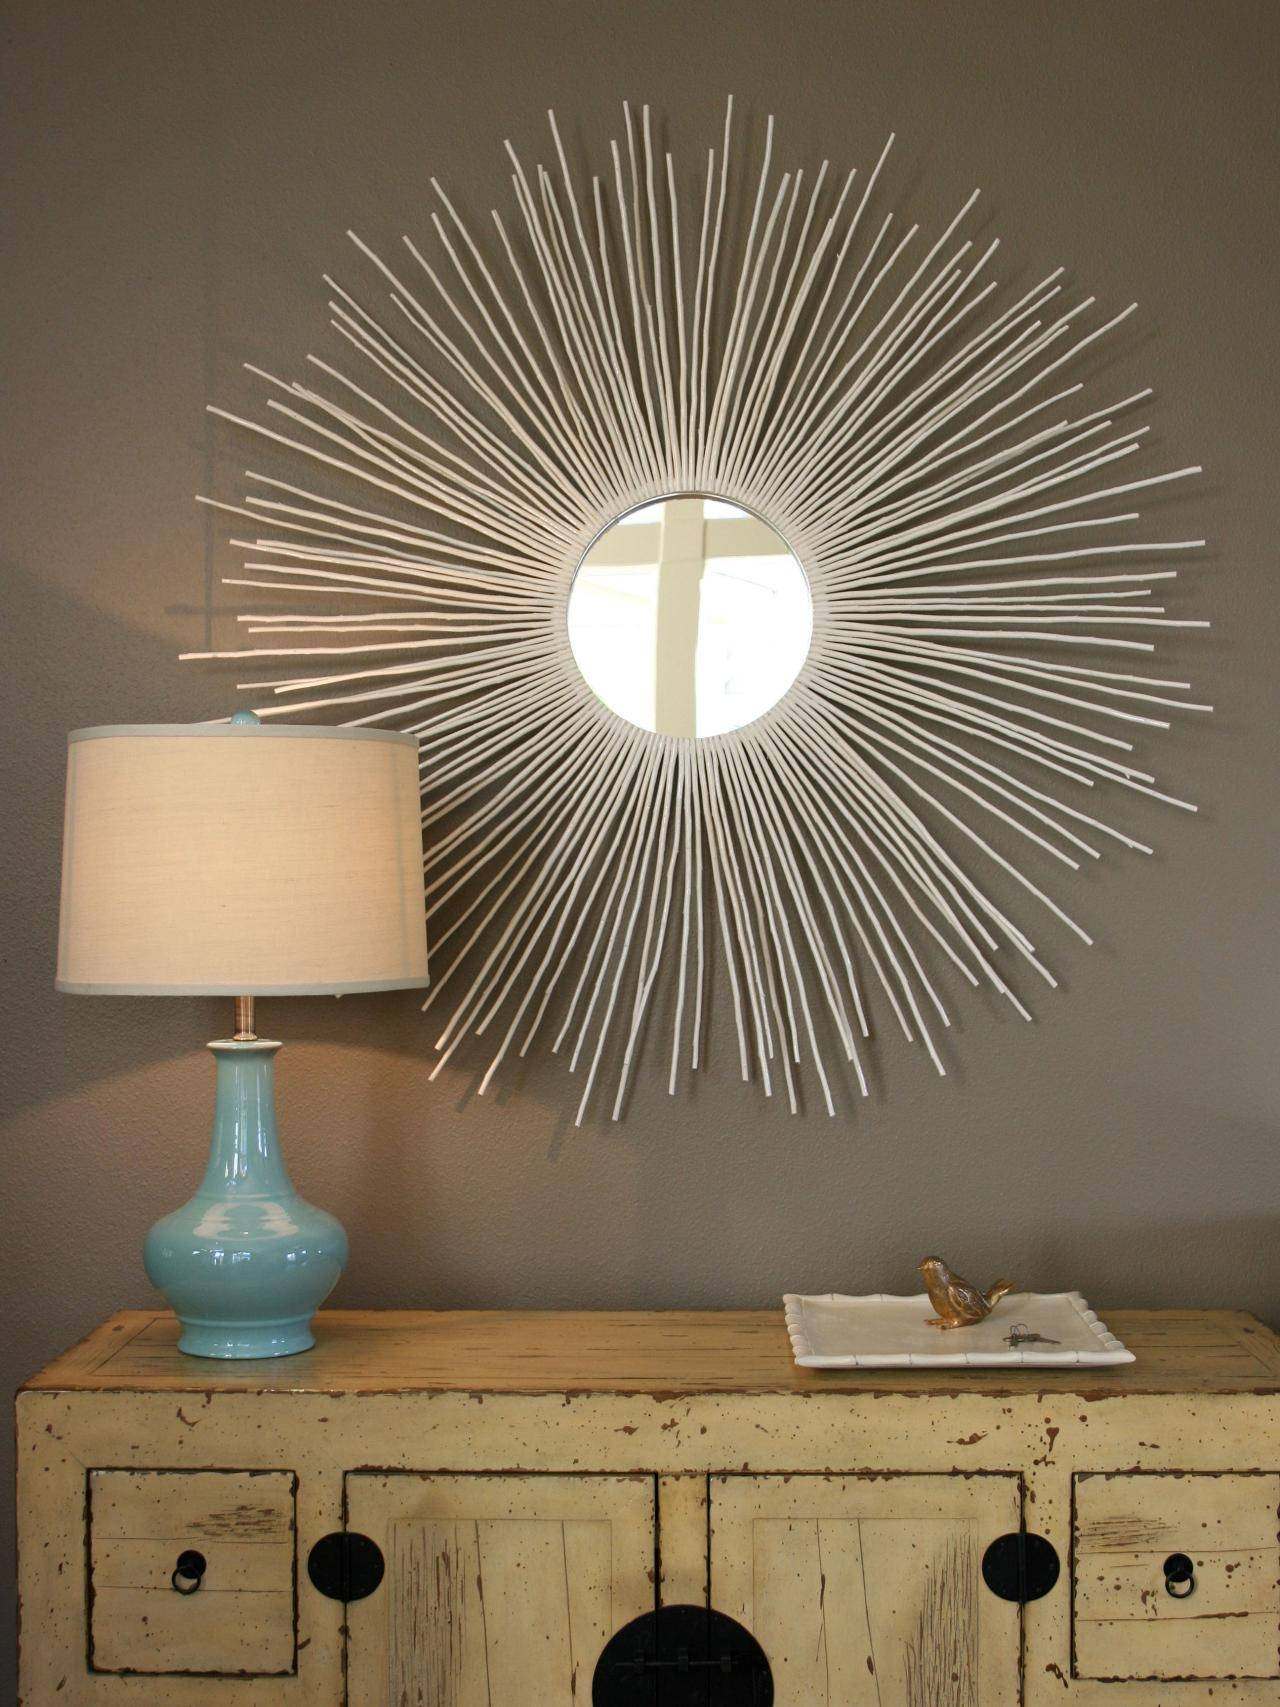 Create A Sunburst Mirror | Hgtv intended for Sun Mirrors (Image 4 of 25)